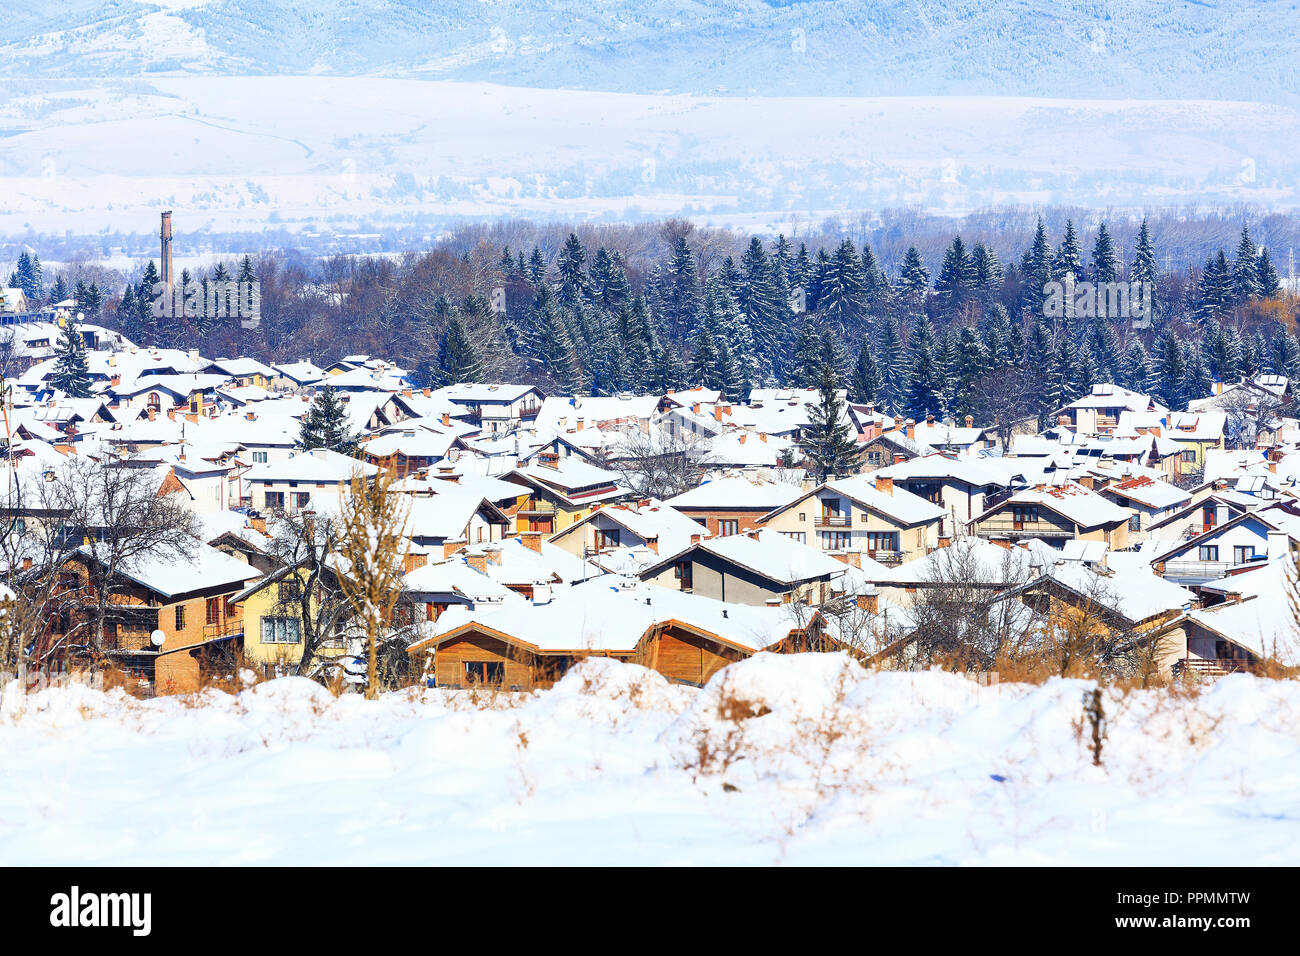 Houses with snow roofs panorama banner of bulgarian ski resort Bansko, Bulgaria - Stock Image